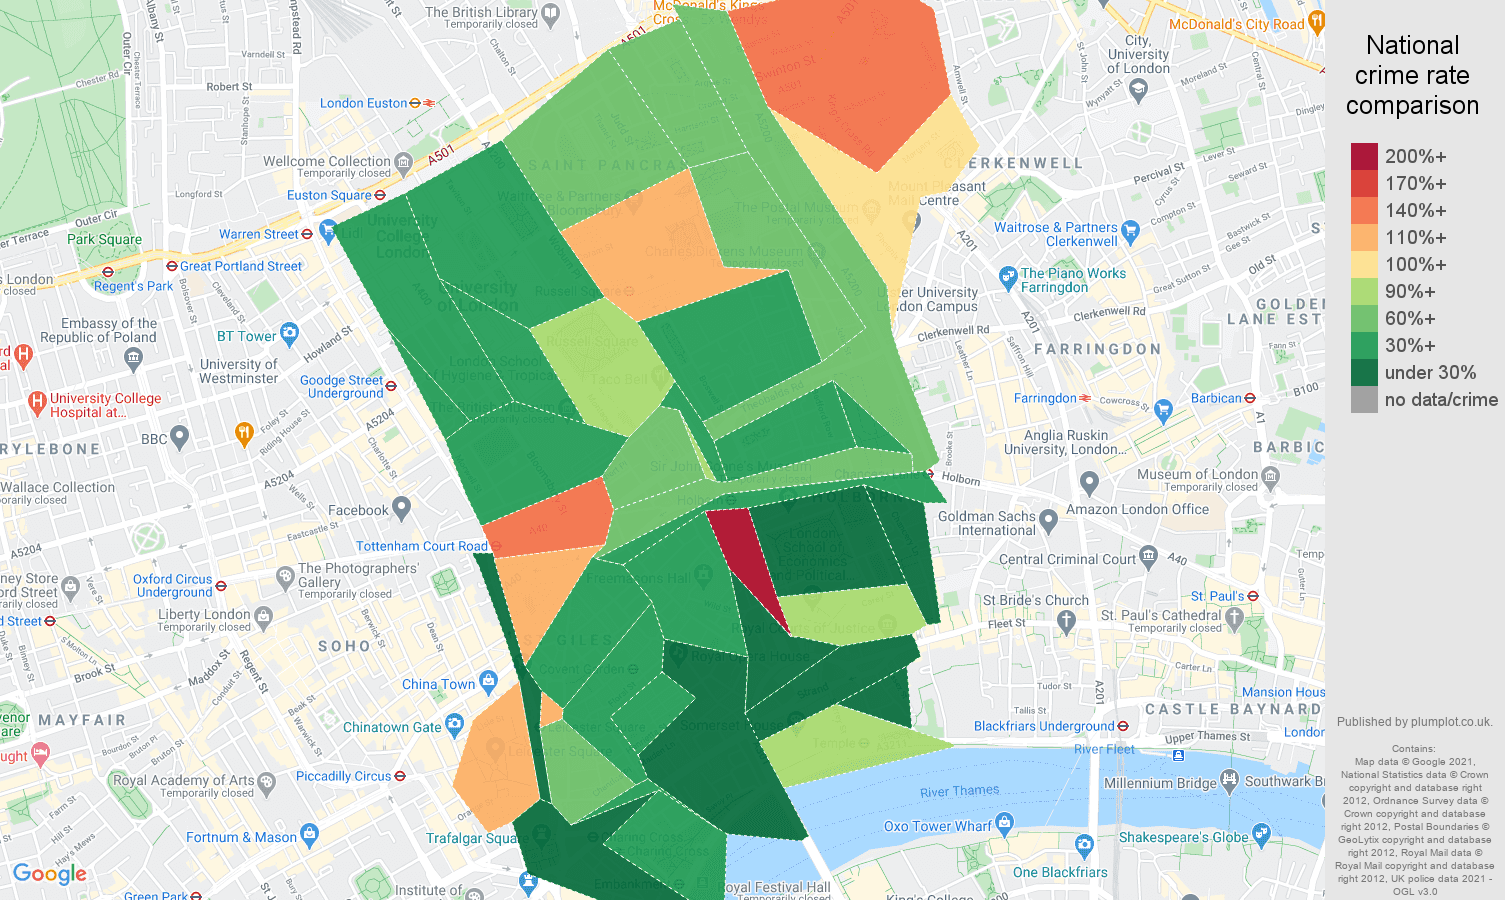 Western Central London burglary crime rate comparison map